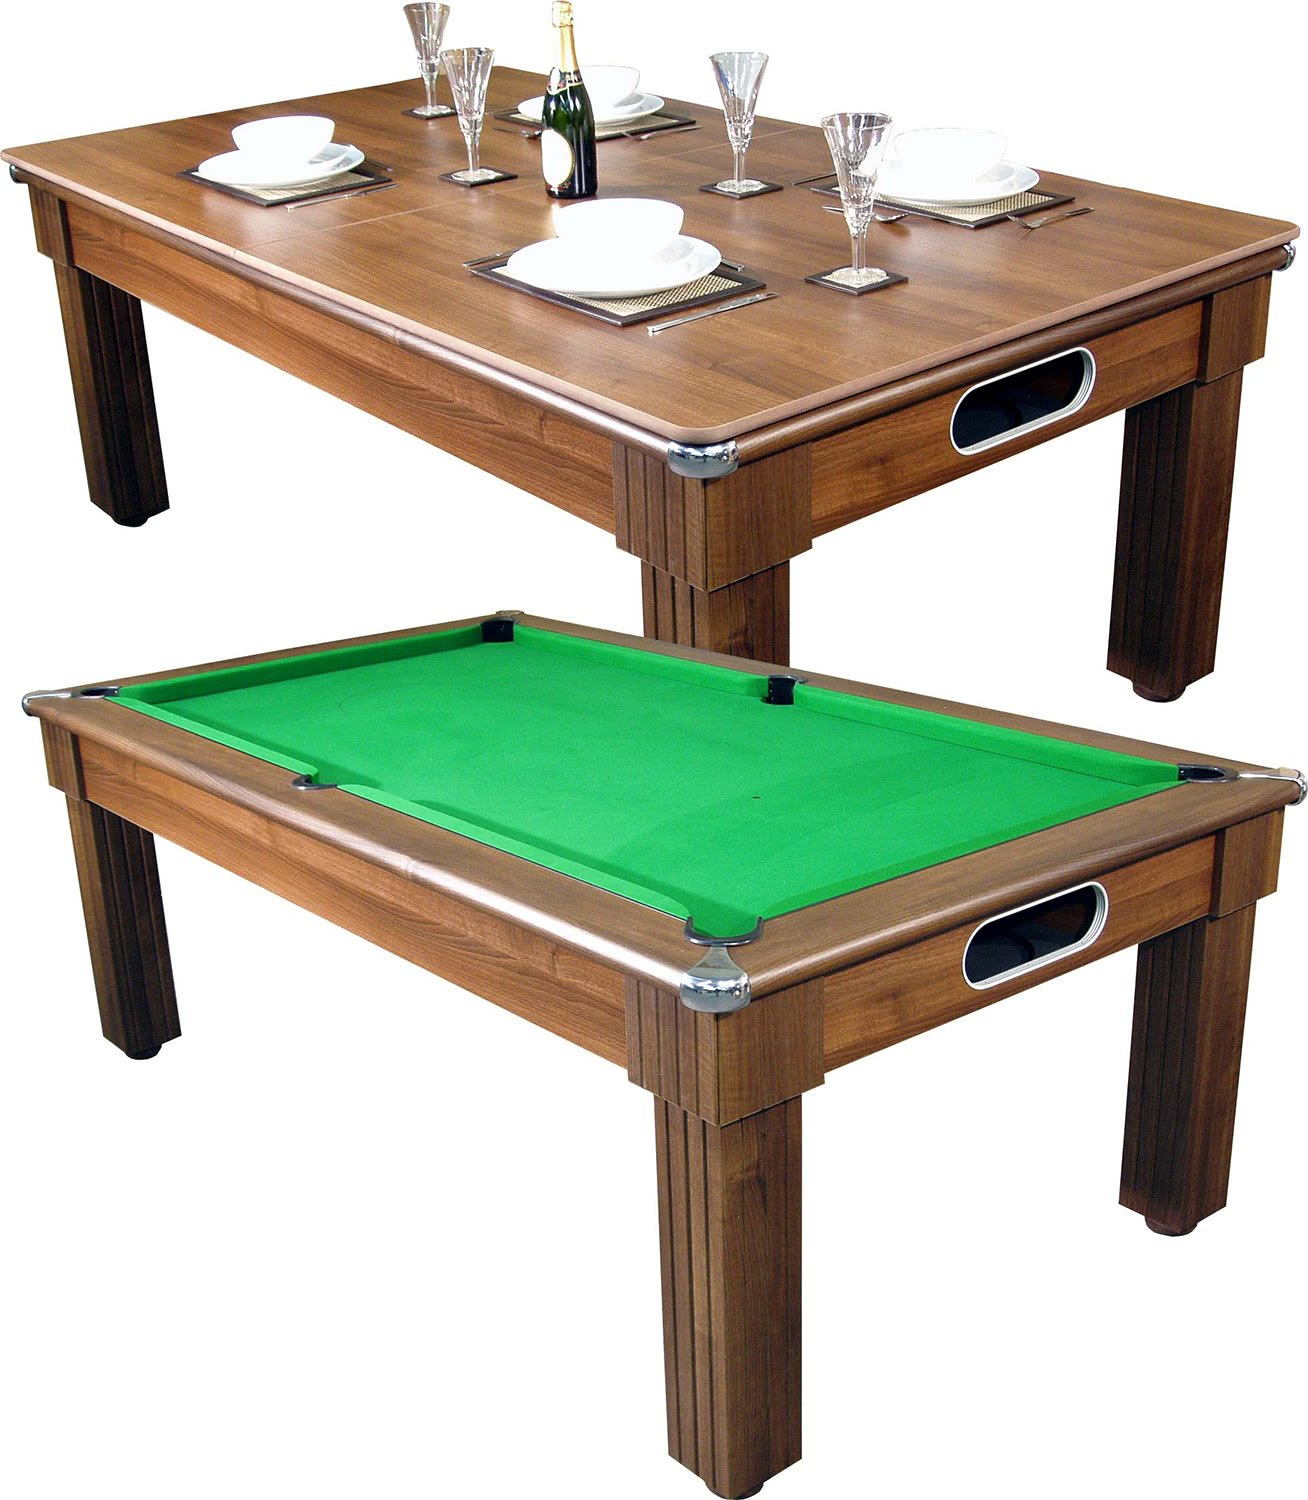 Pool Table Dining Room Table: Florence Pool Dining Table - 6 Ft, 7 Ft